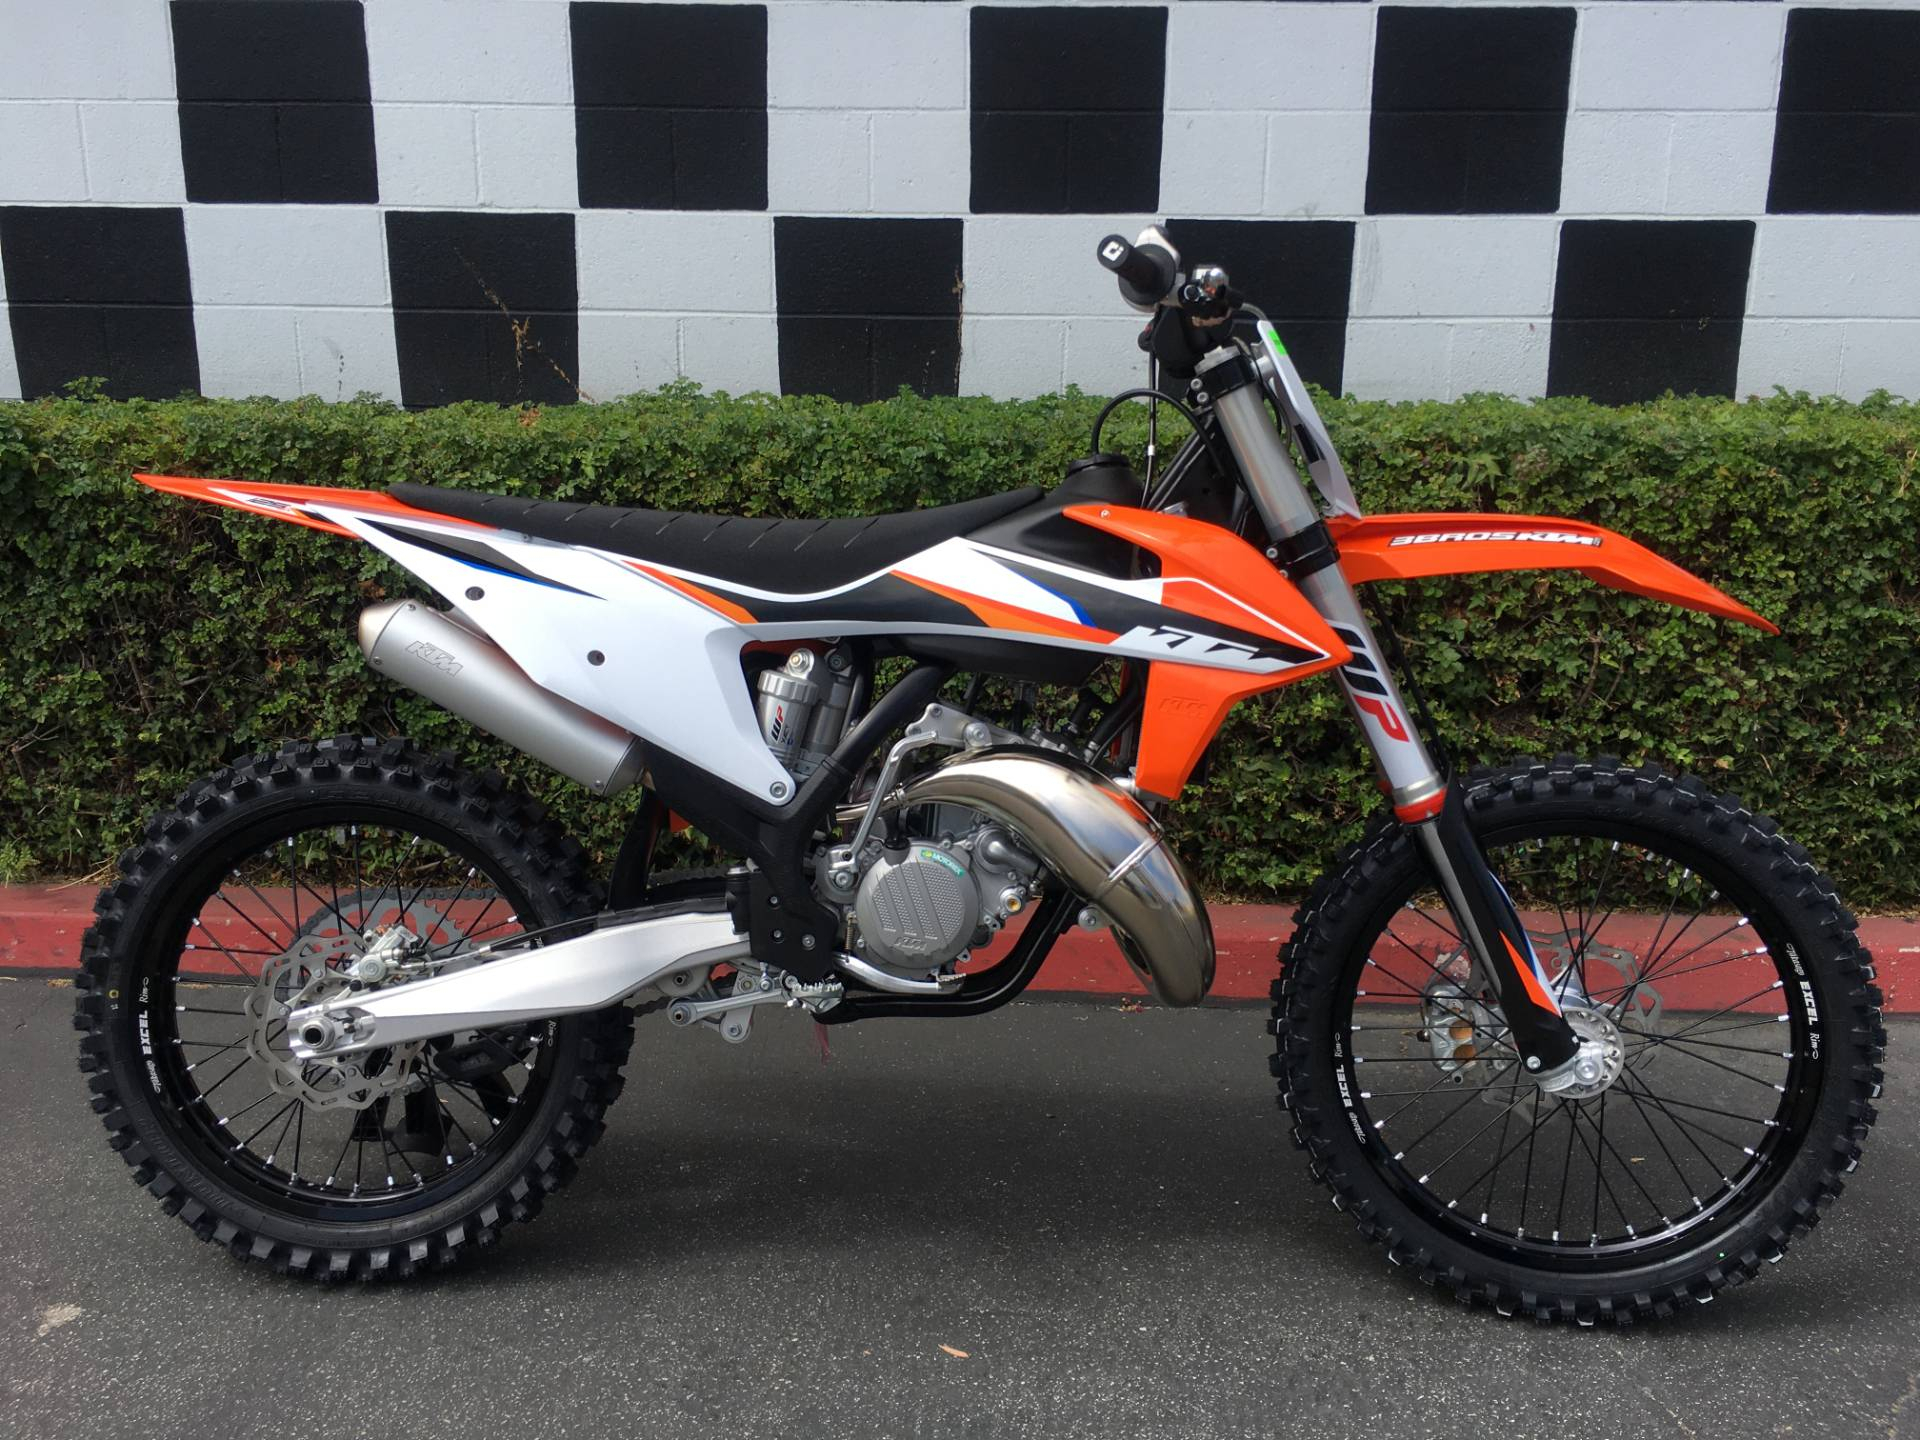 2021 Ktm 125 Sx In Costa Mesa, California